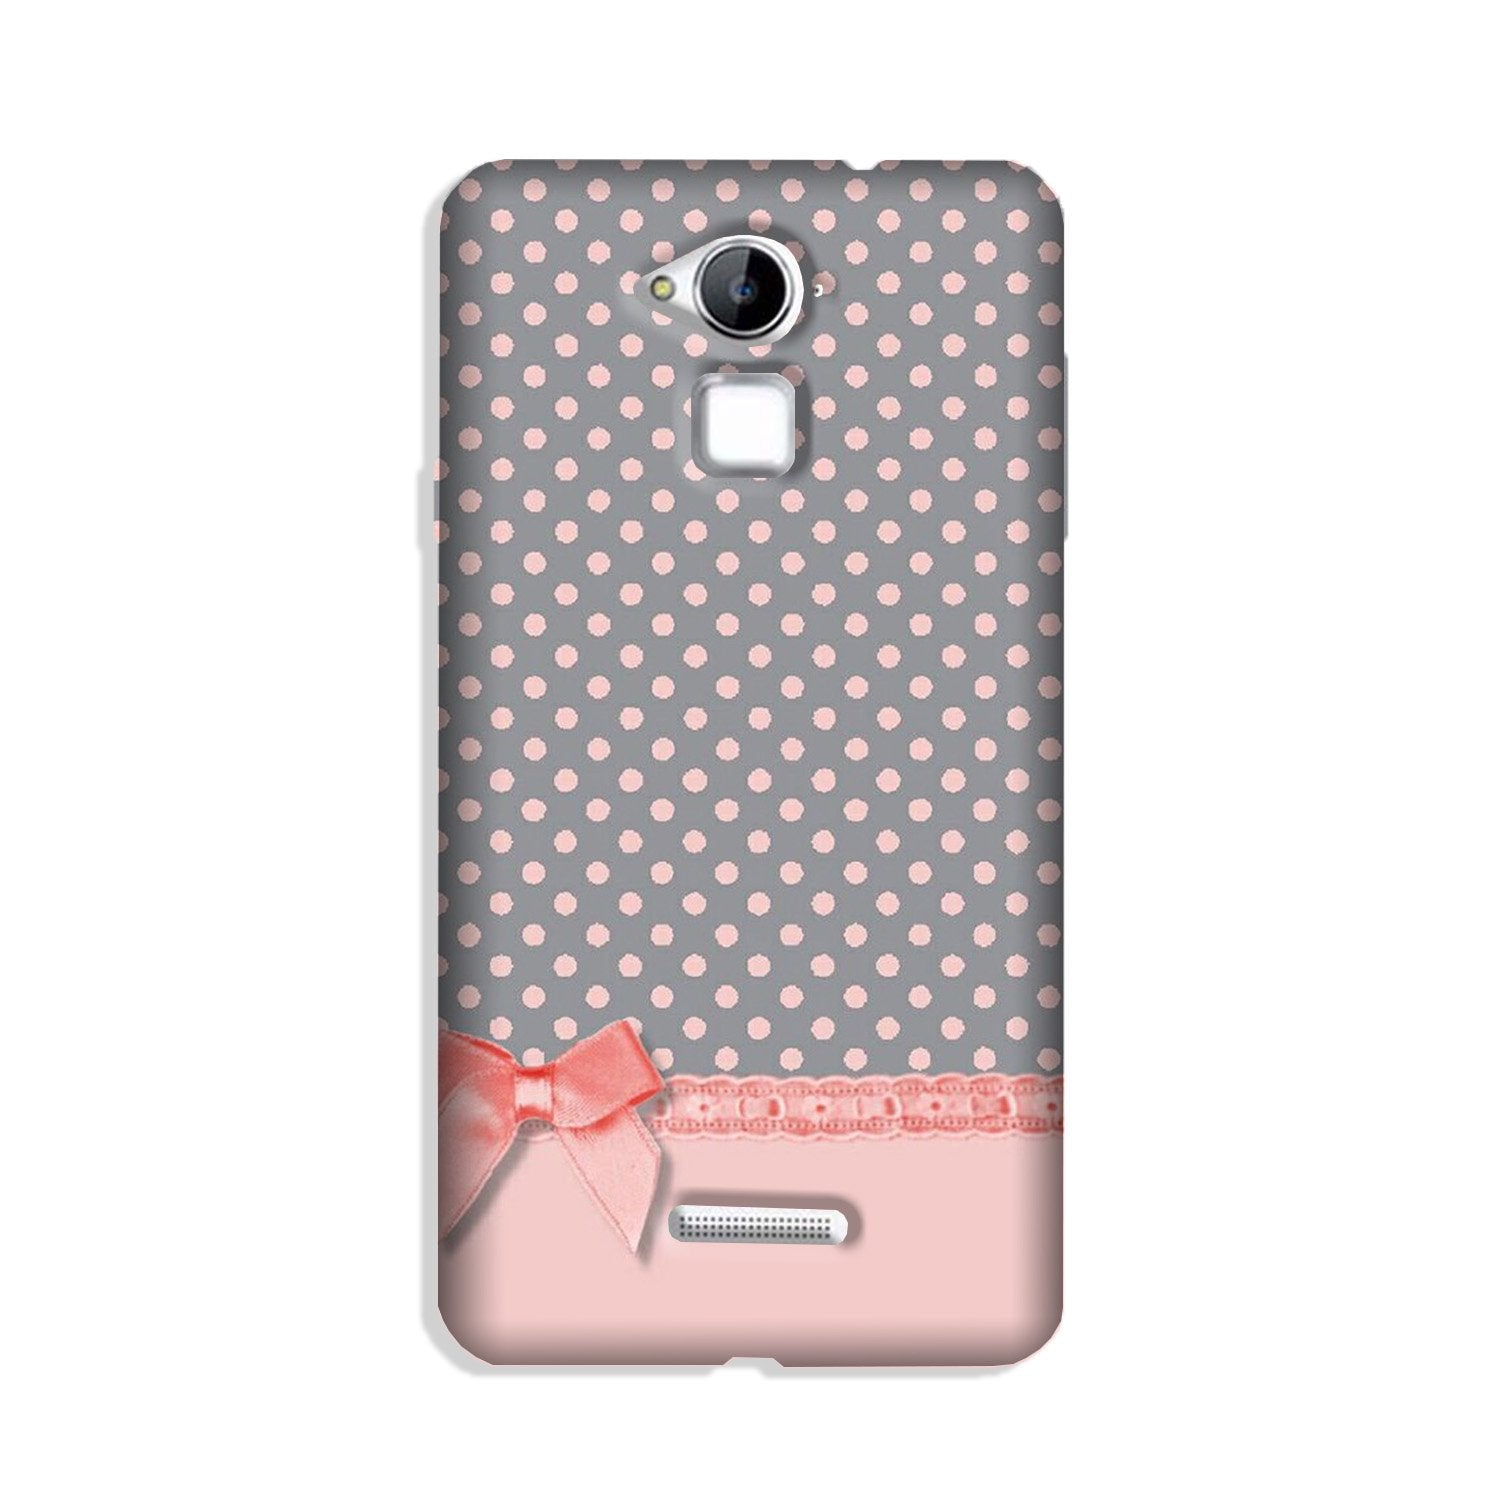 Gift Wrap2 Case for Coolpad Note 3